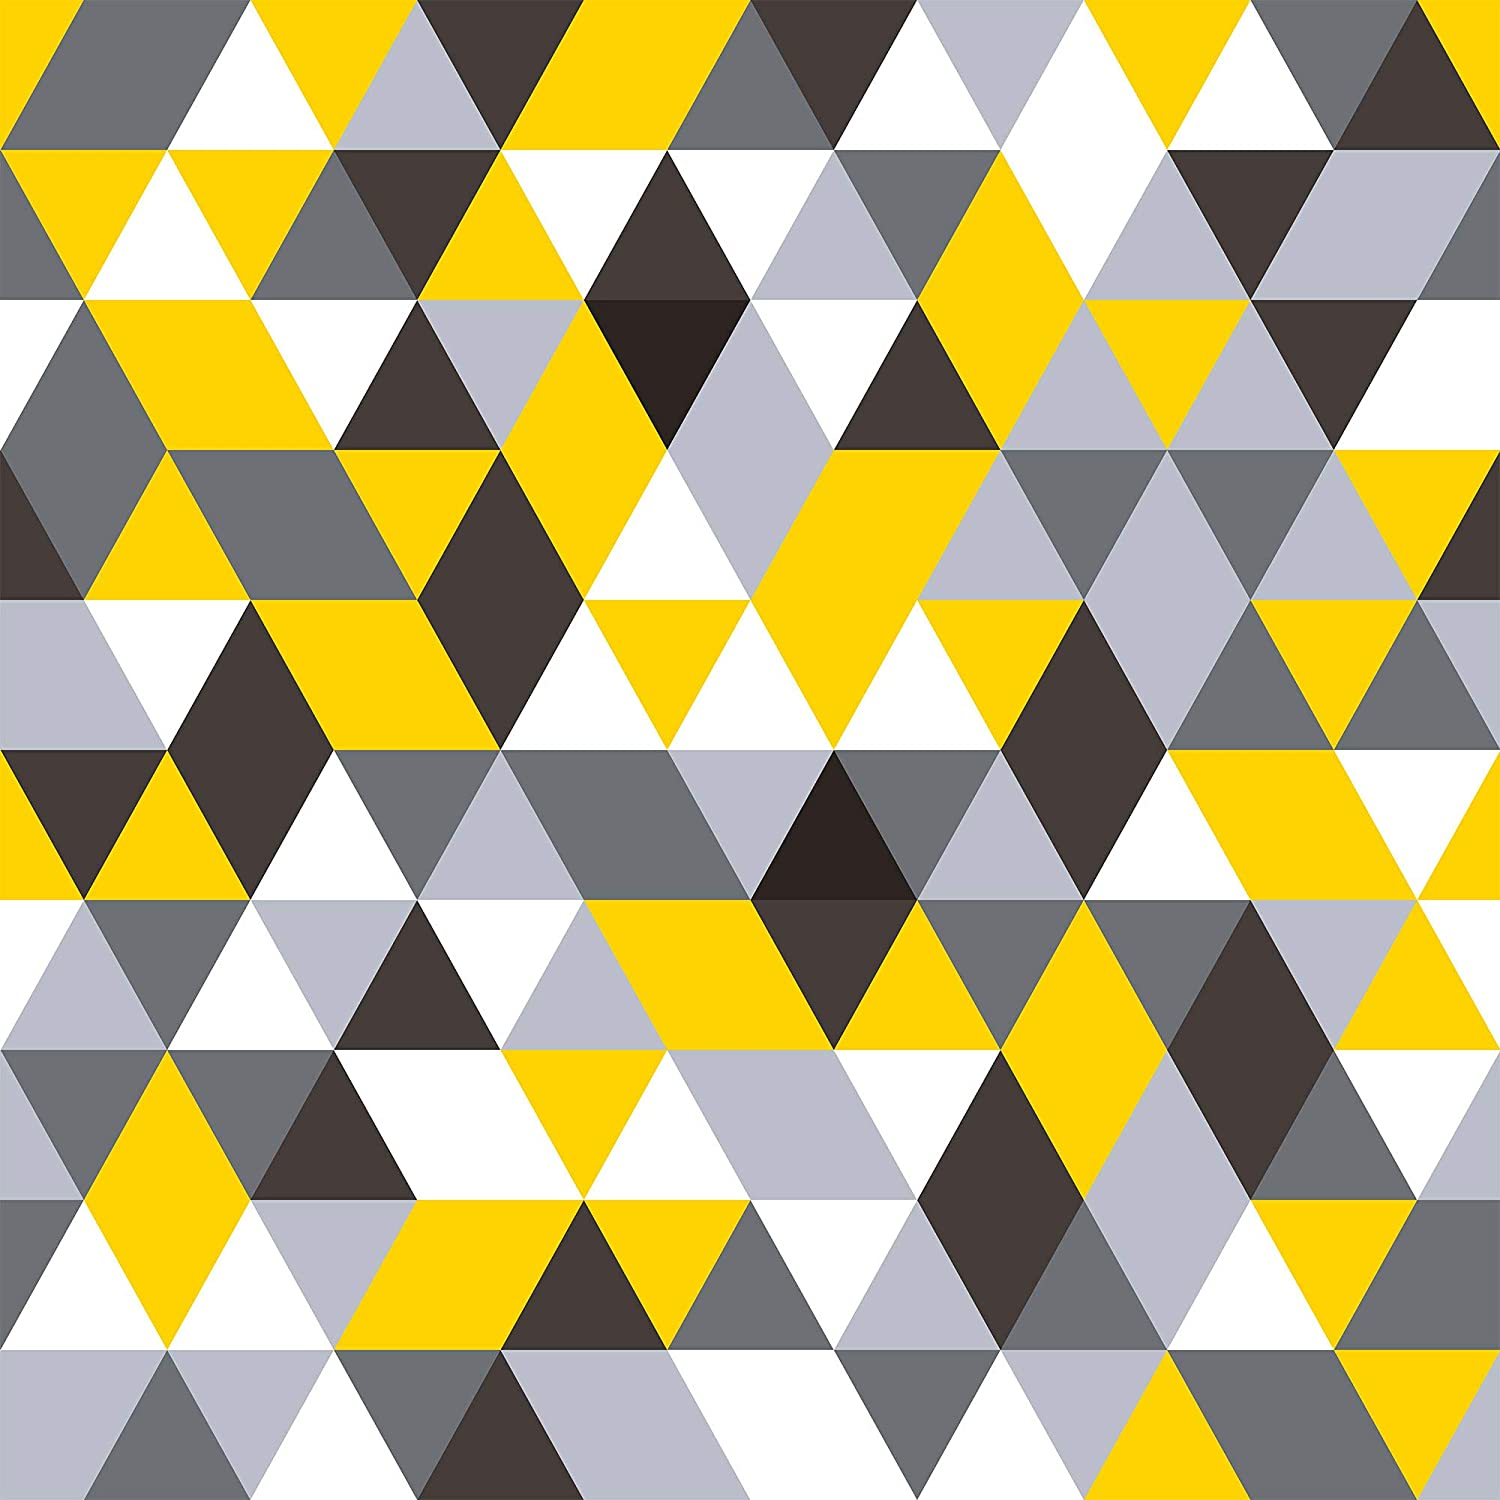 Wallsbyme Peel And Stick Yellow And Grey Triangles Geometric Fabric Removable Wallpaper 3954 2ft X 4ft 61x122cm Amazon Com